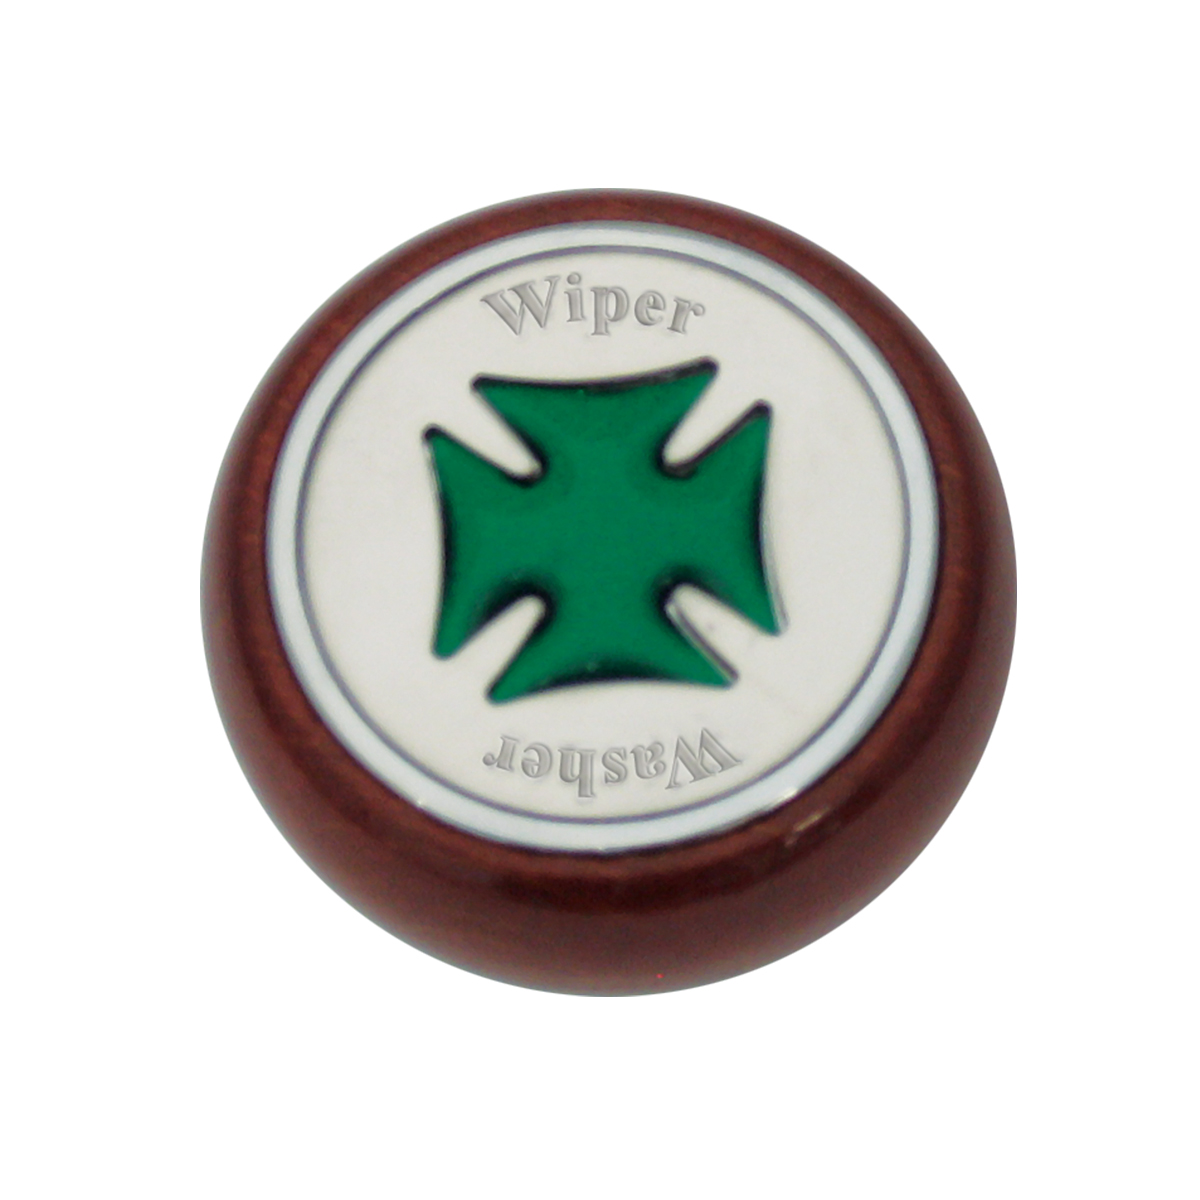 95403 Green Iron Cross Dashboard Control Knob w/ Wiper/Washer Script